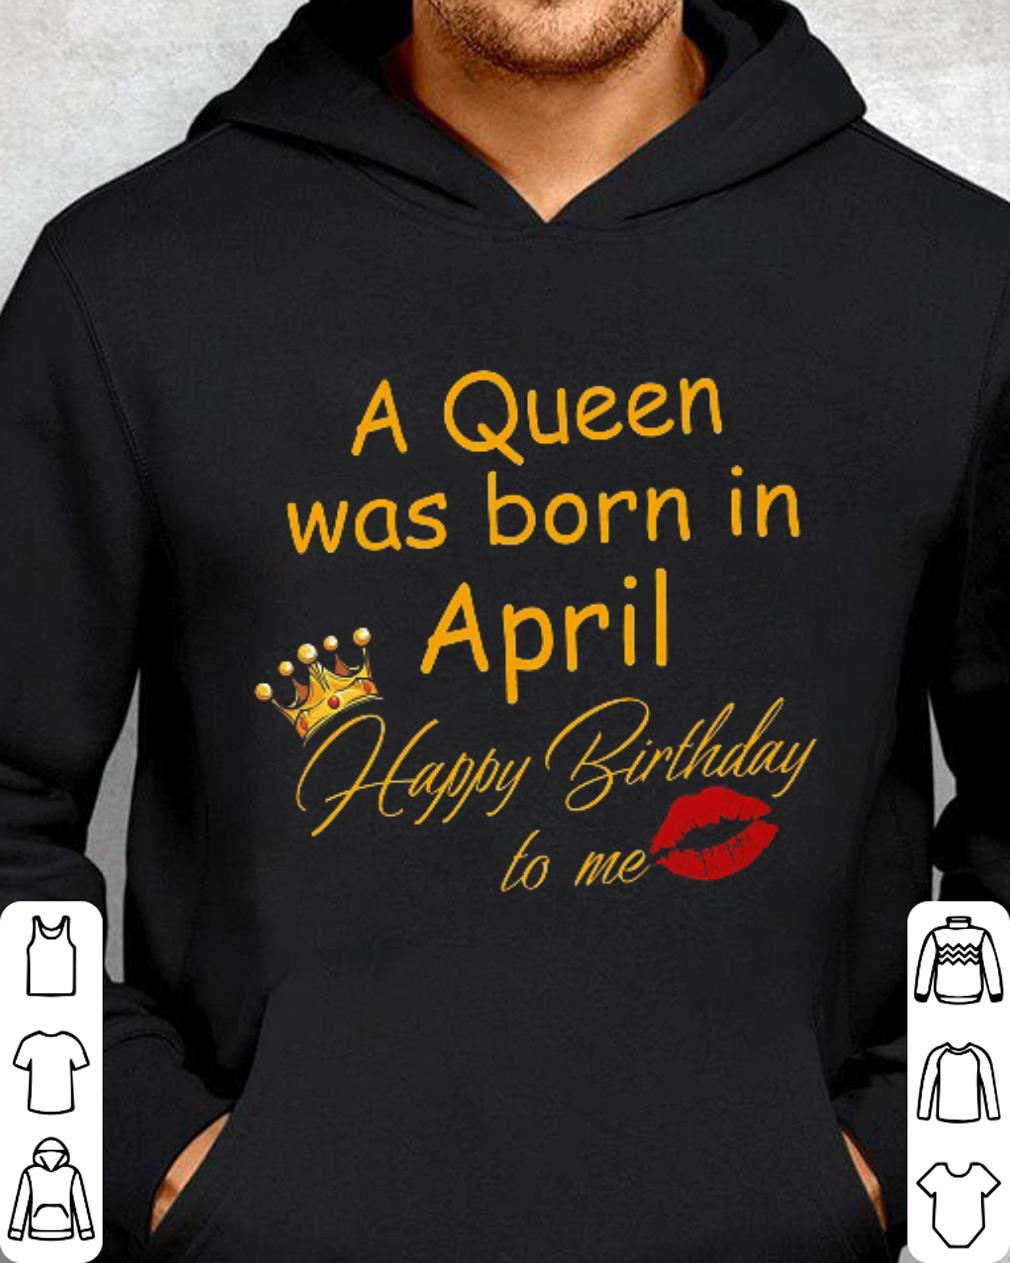 https://kuteeboutique.com/wp-content/uploads/2019/02/A-queen-was-born-in-april-happy-birthday-to-me-shirt_4.jpg